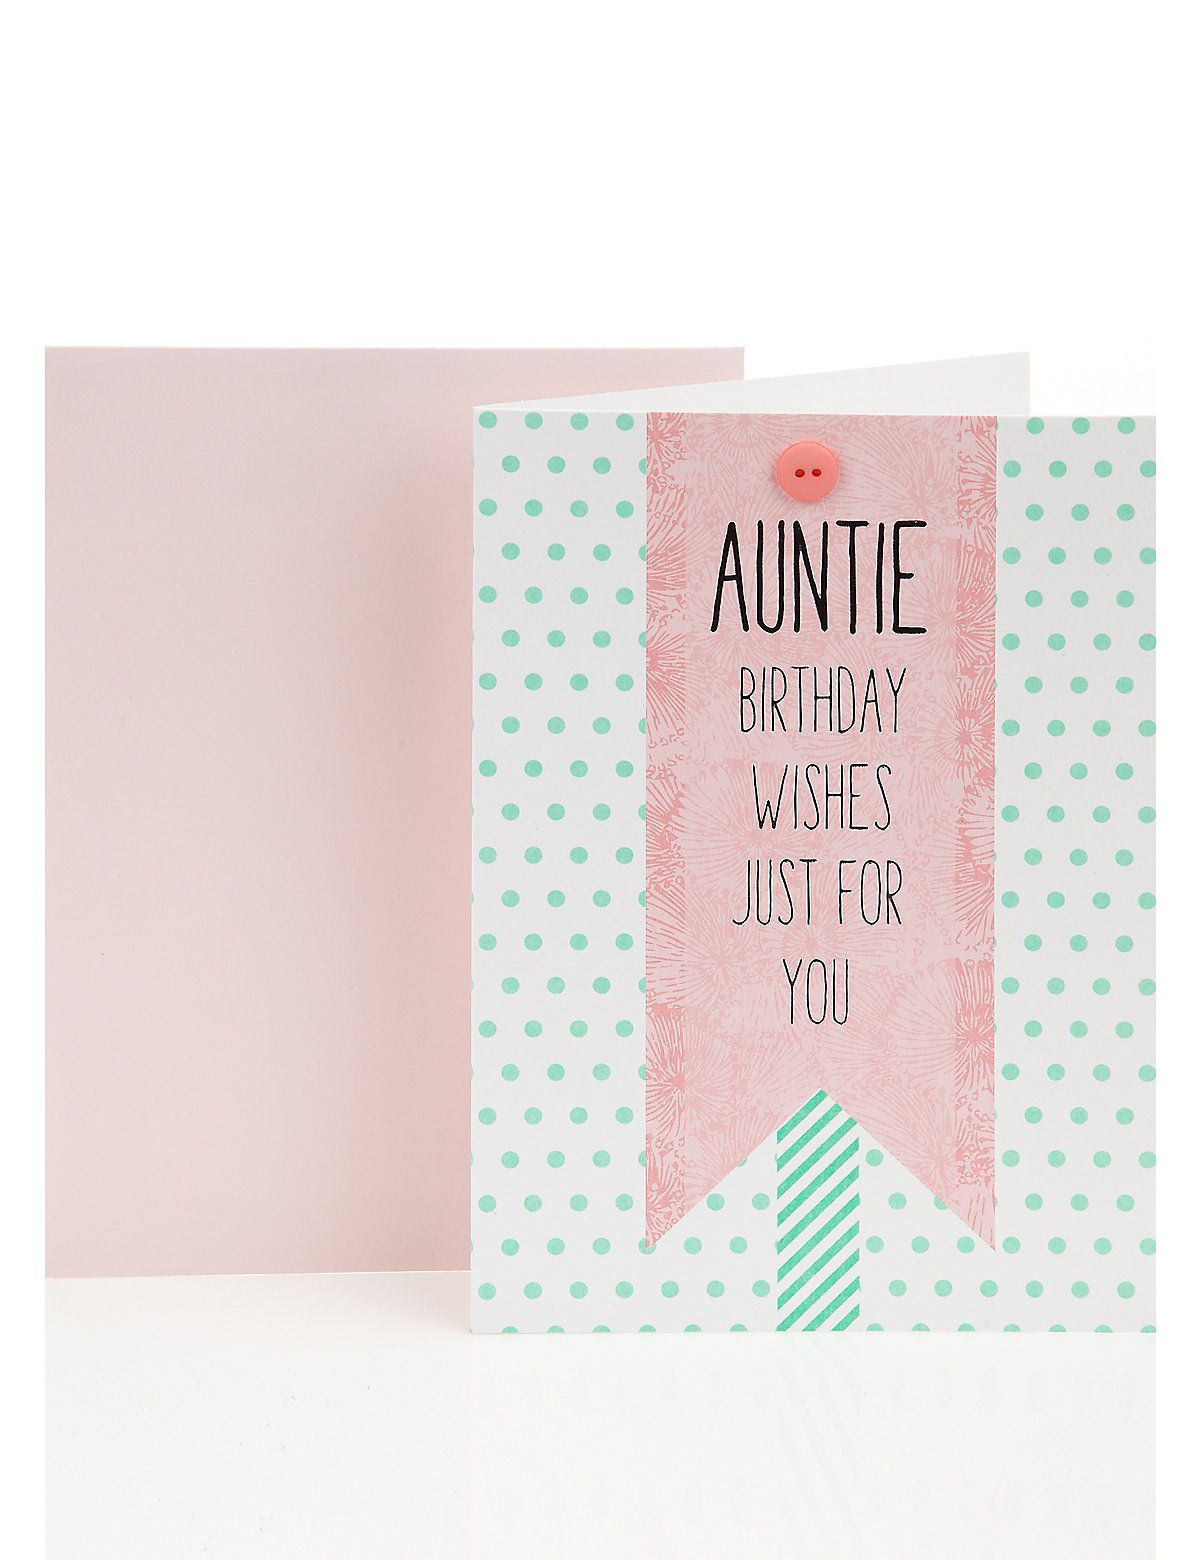 Auntie birthday greetings image collections greeting card examples auntie birthday greetings image collections greeting card examples green spotty auntie birthday greetings card ms its kristyandbryce Choice Image